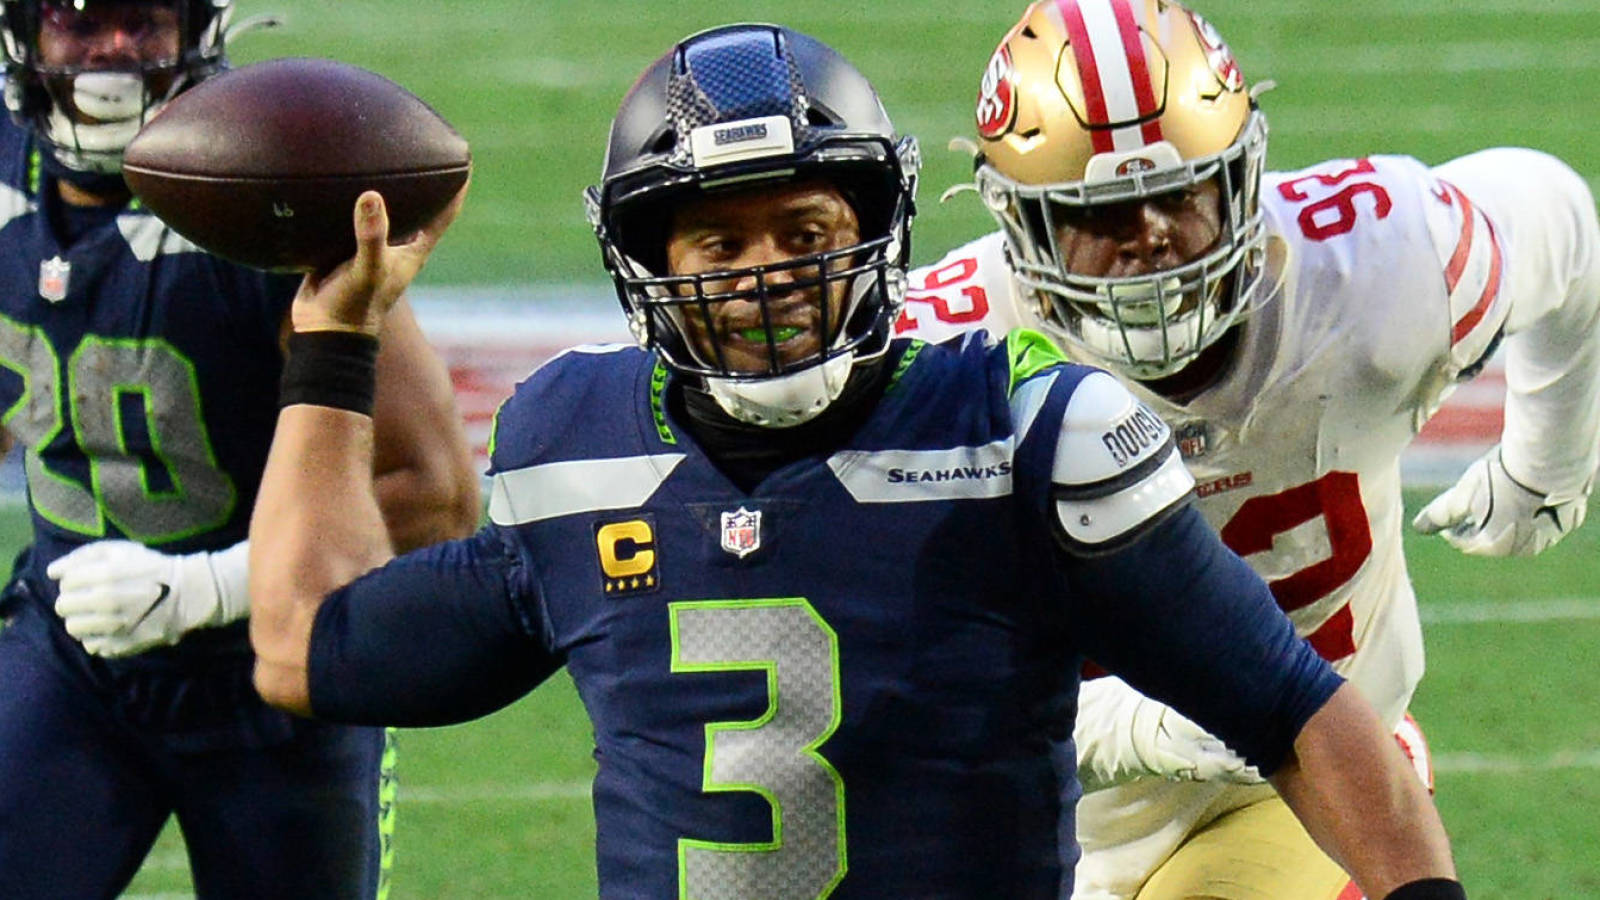 Seahawks' front-office power structure behind Russell Wilson's unhappiness?